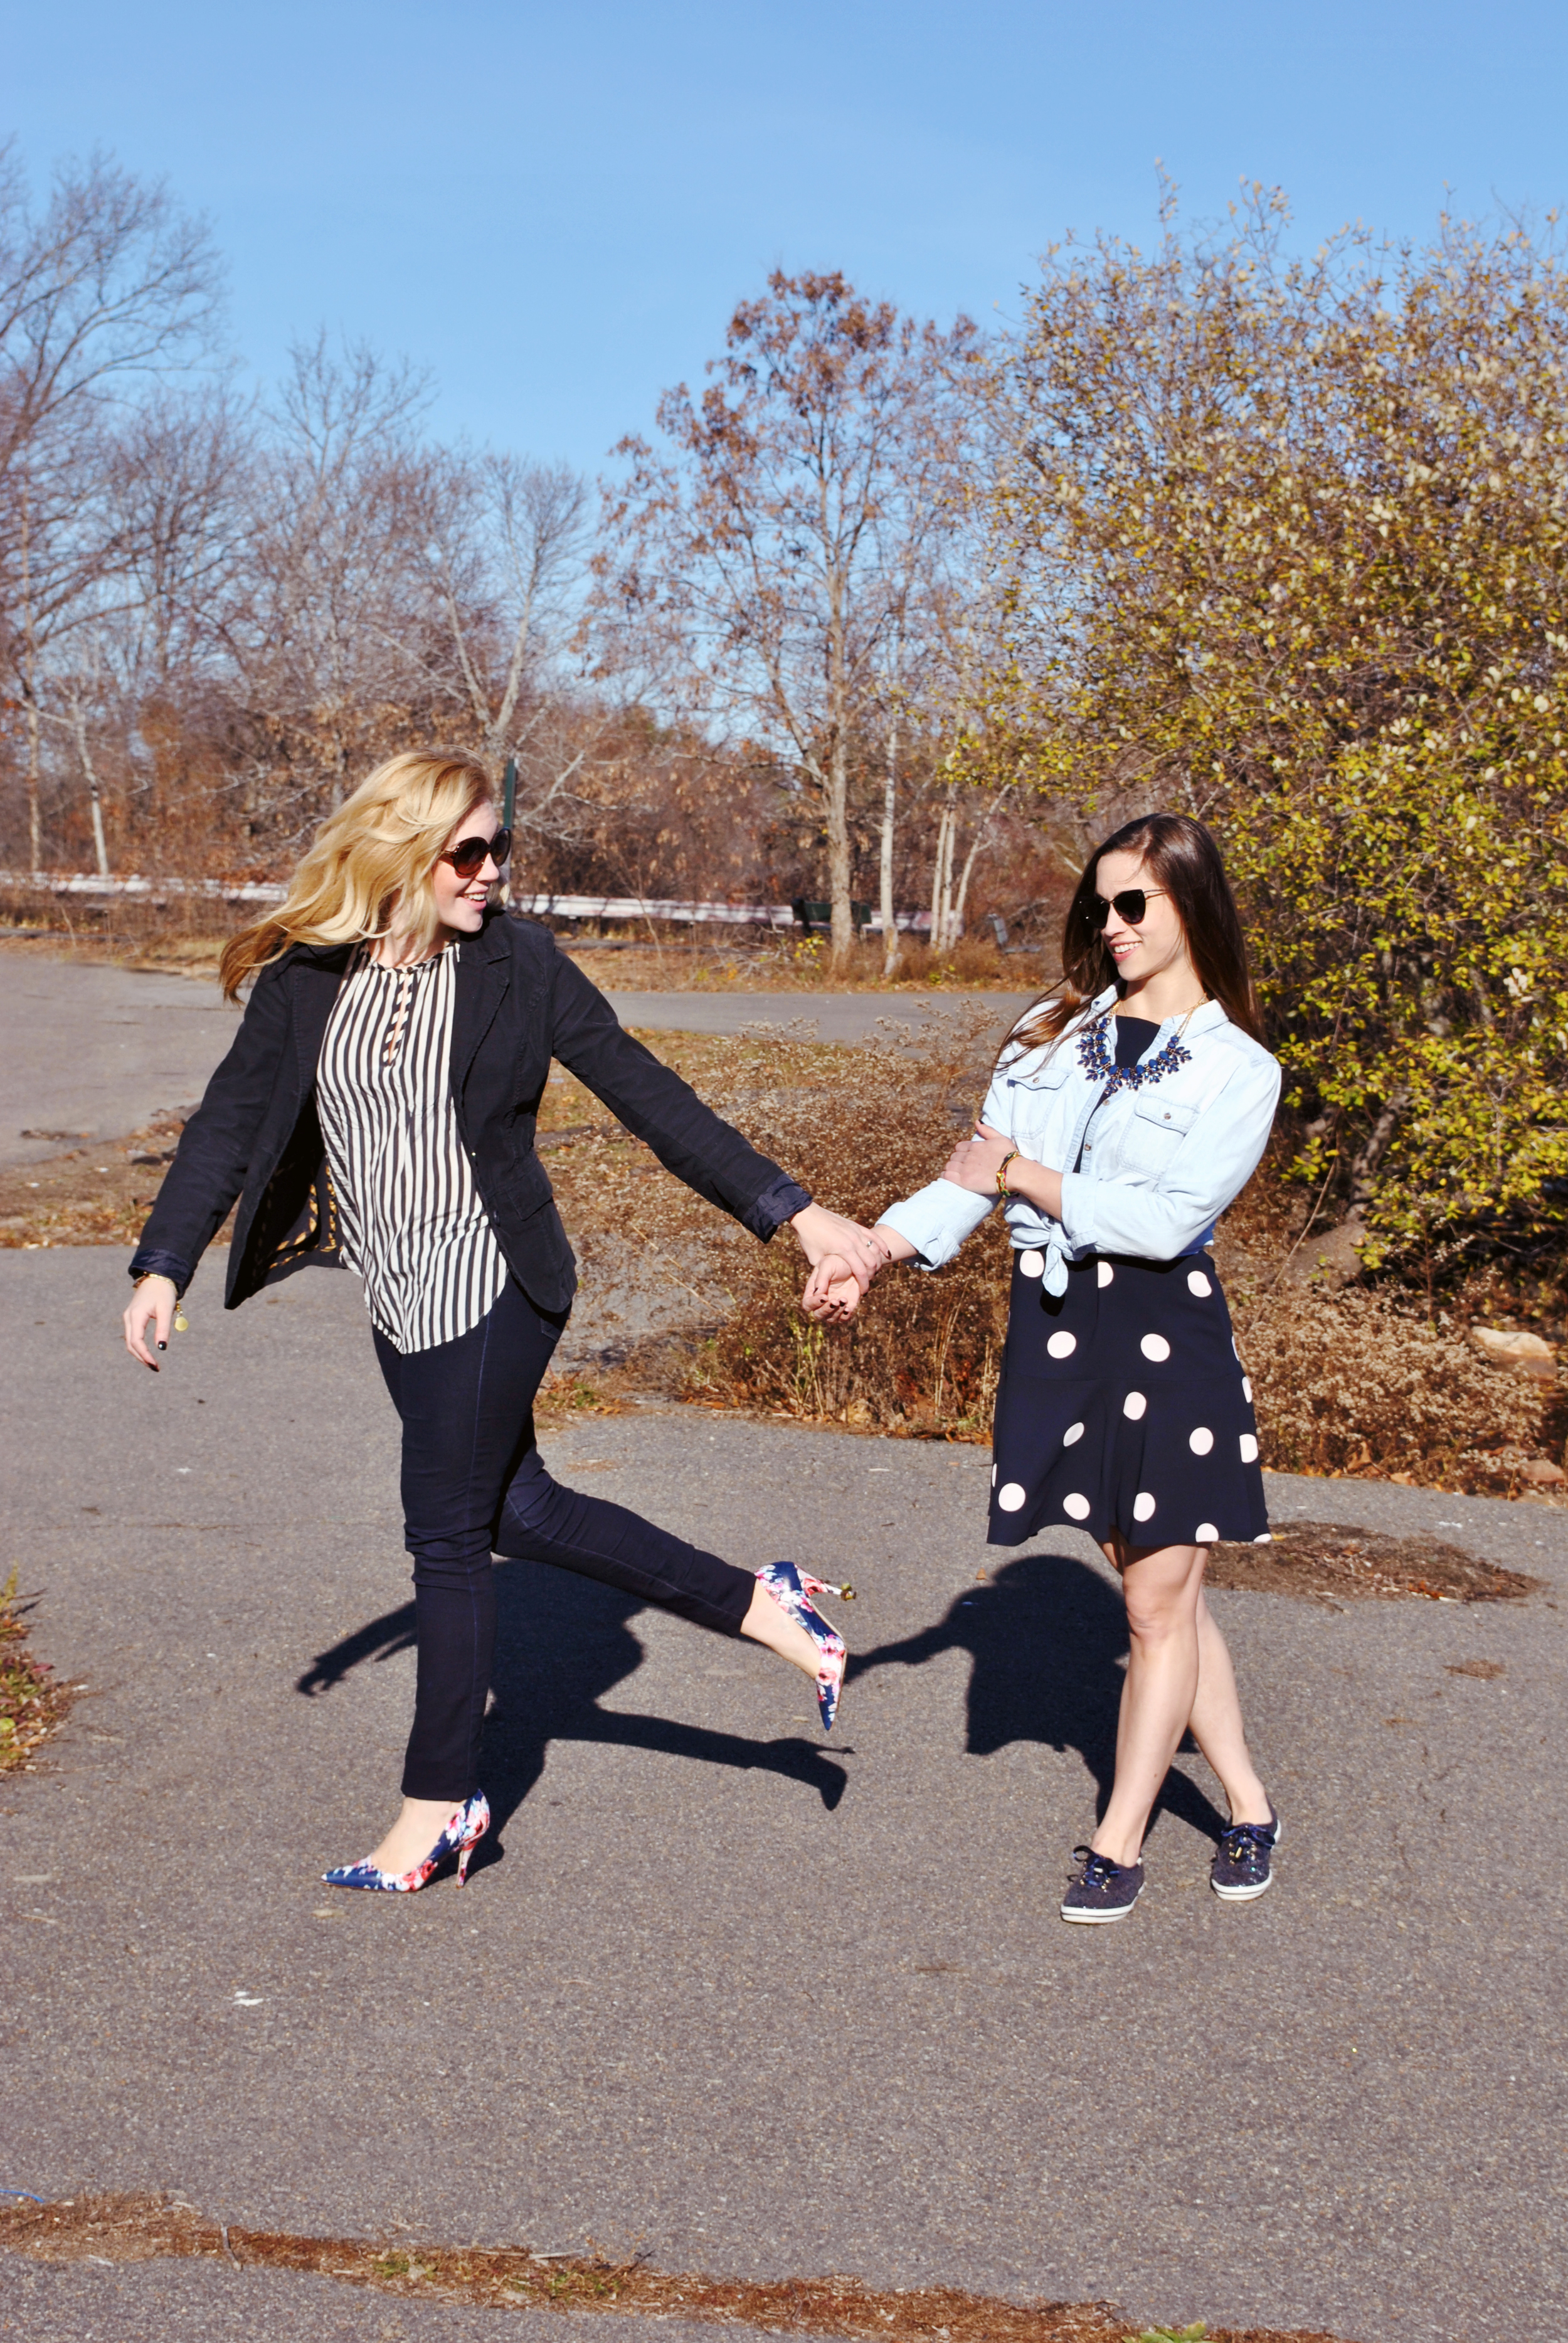 thoughtfulwish | dress for success // navy // kate spade / polka dots / shopstyle / best friends // best friend fashion // fashion // new england // boston fashion // preppy outfit // interview outfit